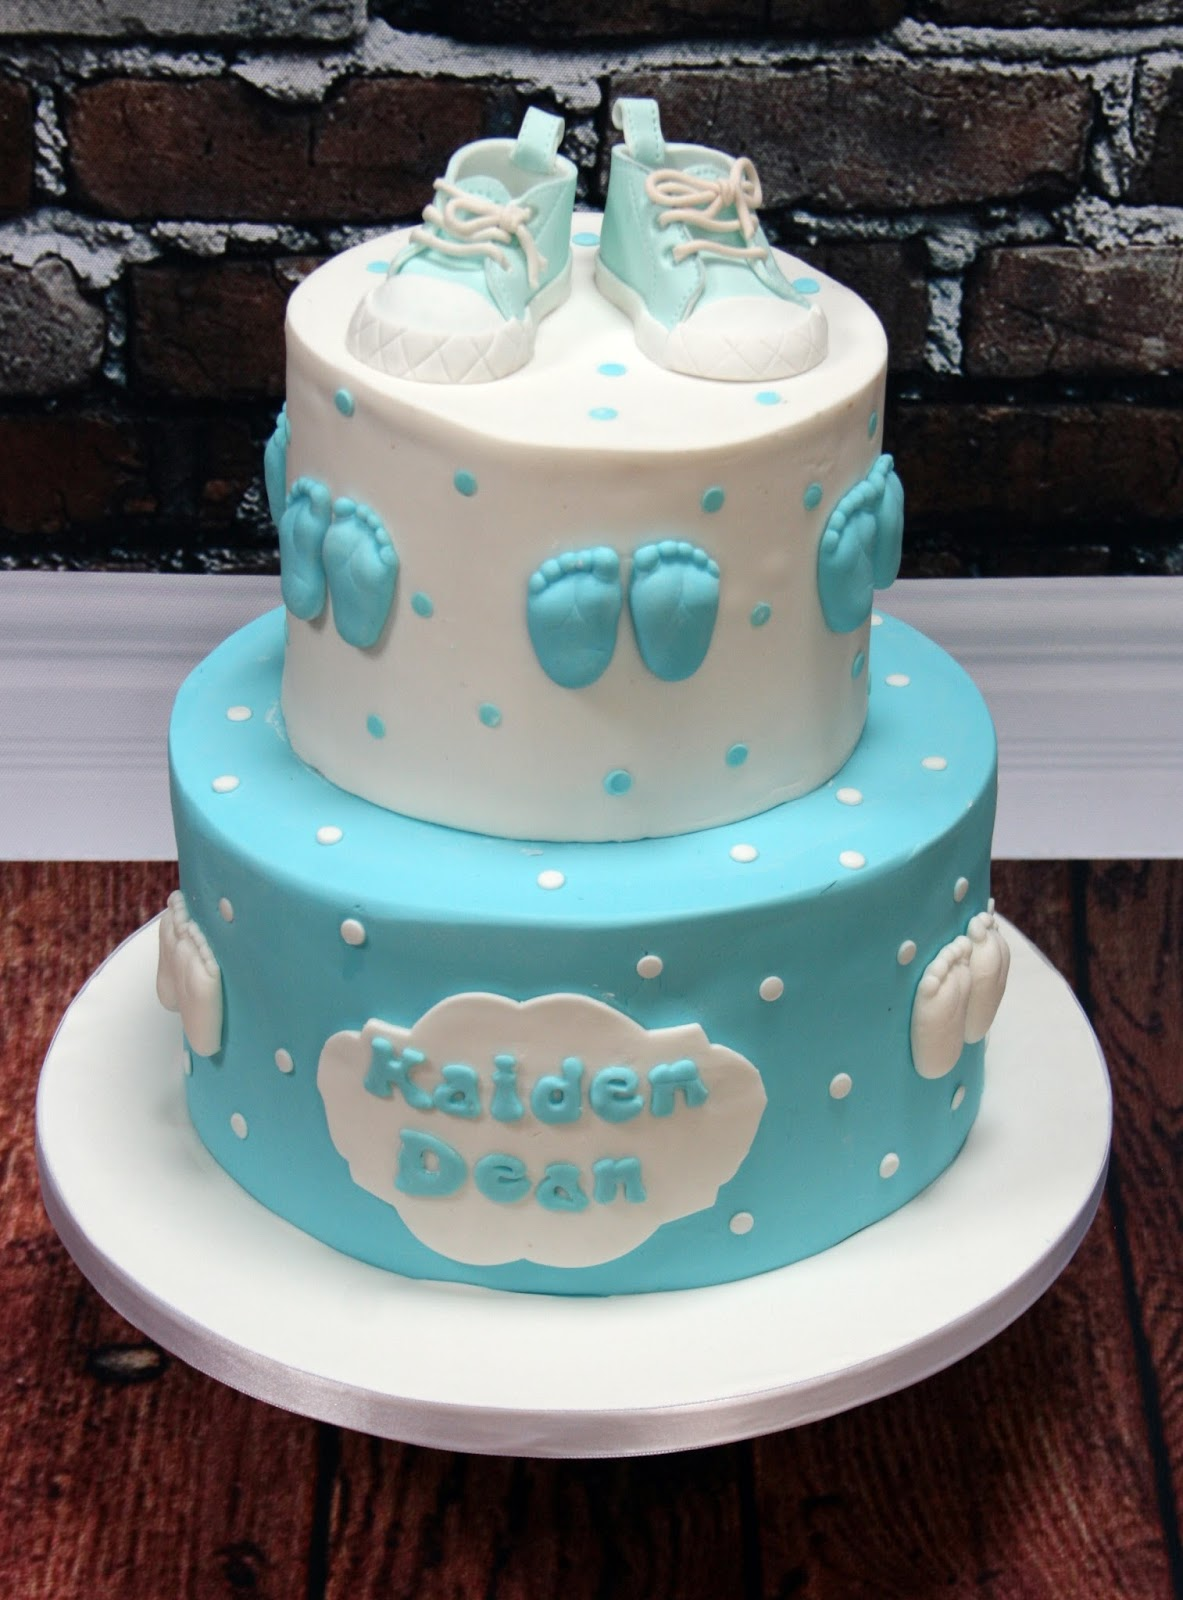 The Perfectionist Confectionist Kaiden Dean Christening Cake